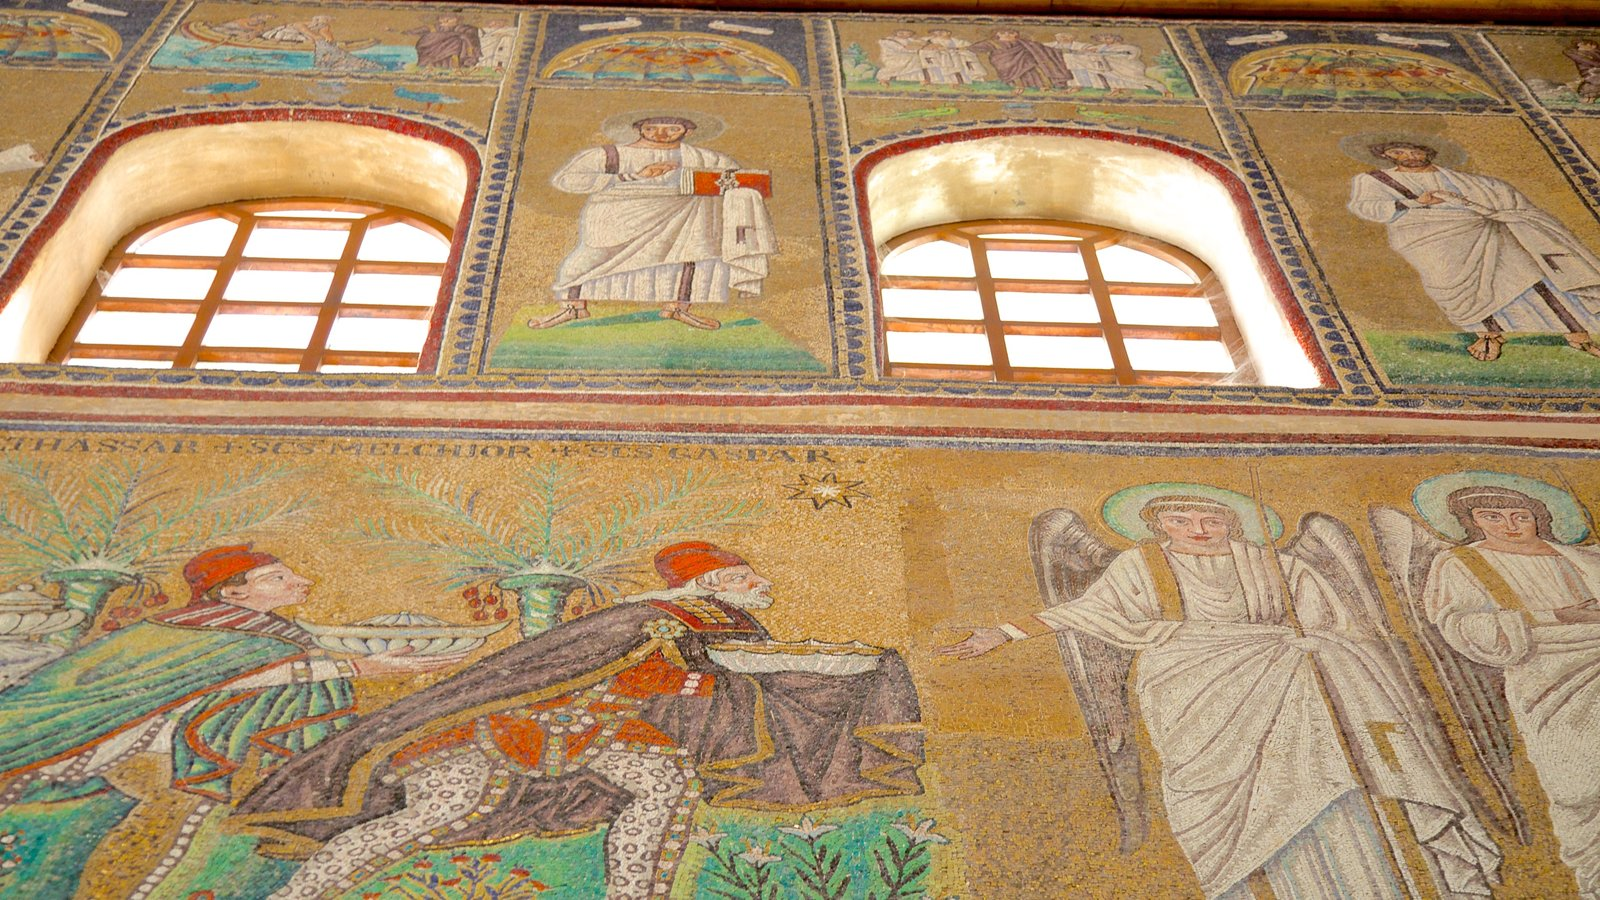 Basilica of Sant\' Apollinare Nuovo which includes religious elements, art and a church or cathedral